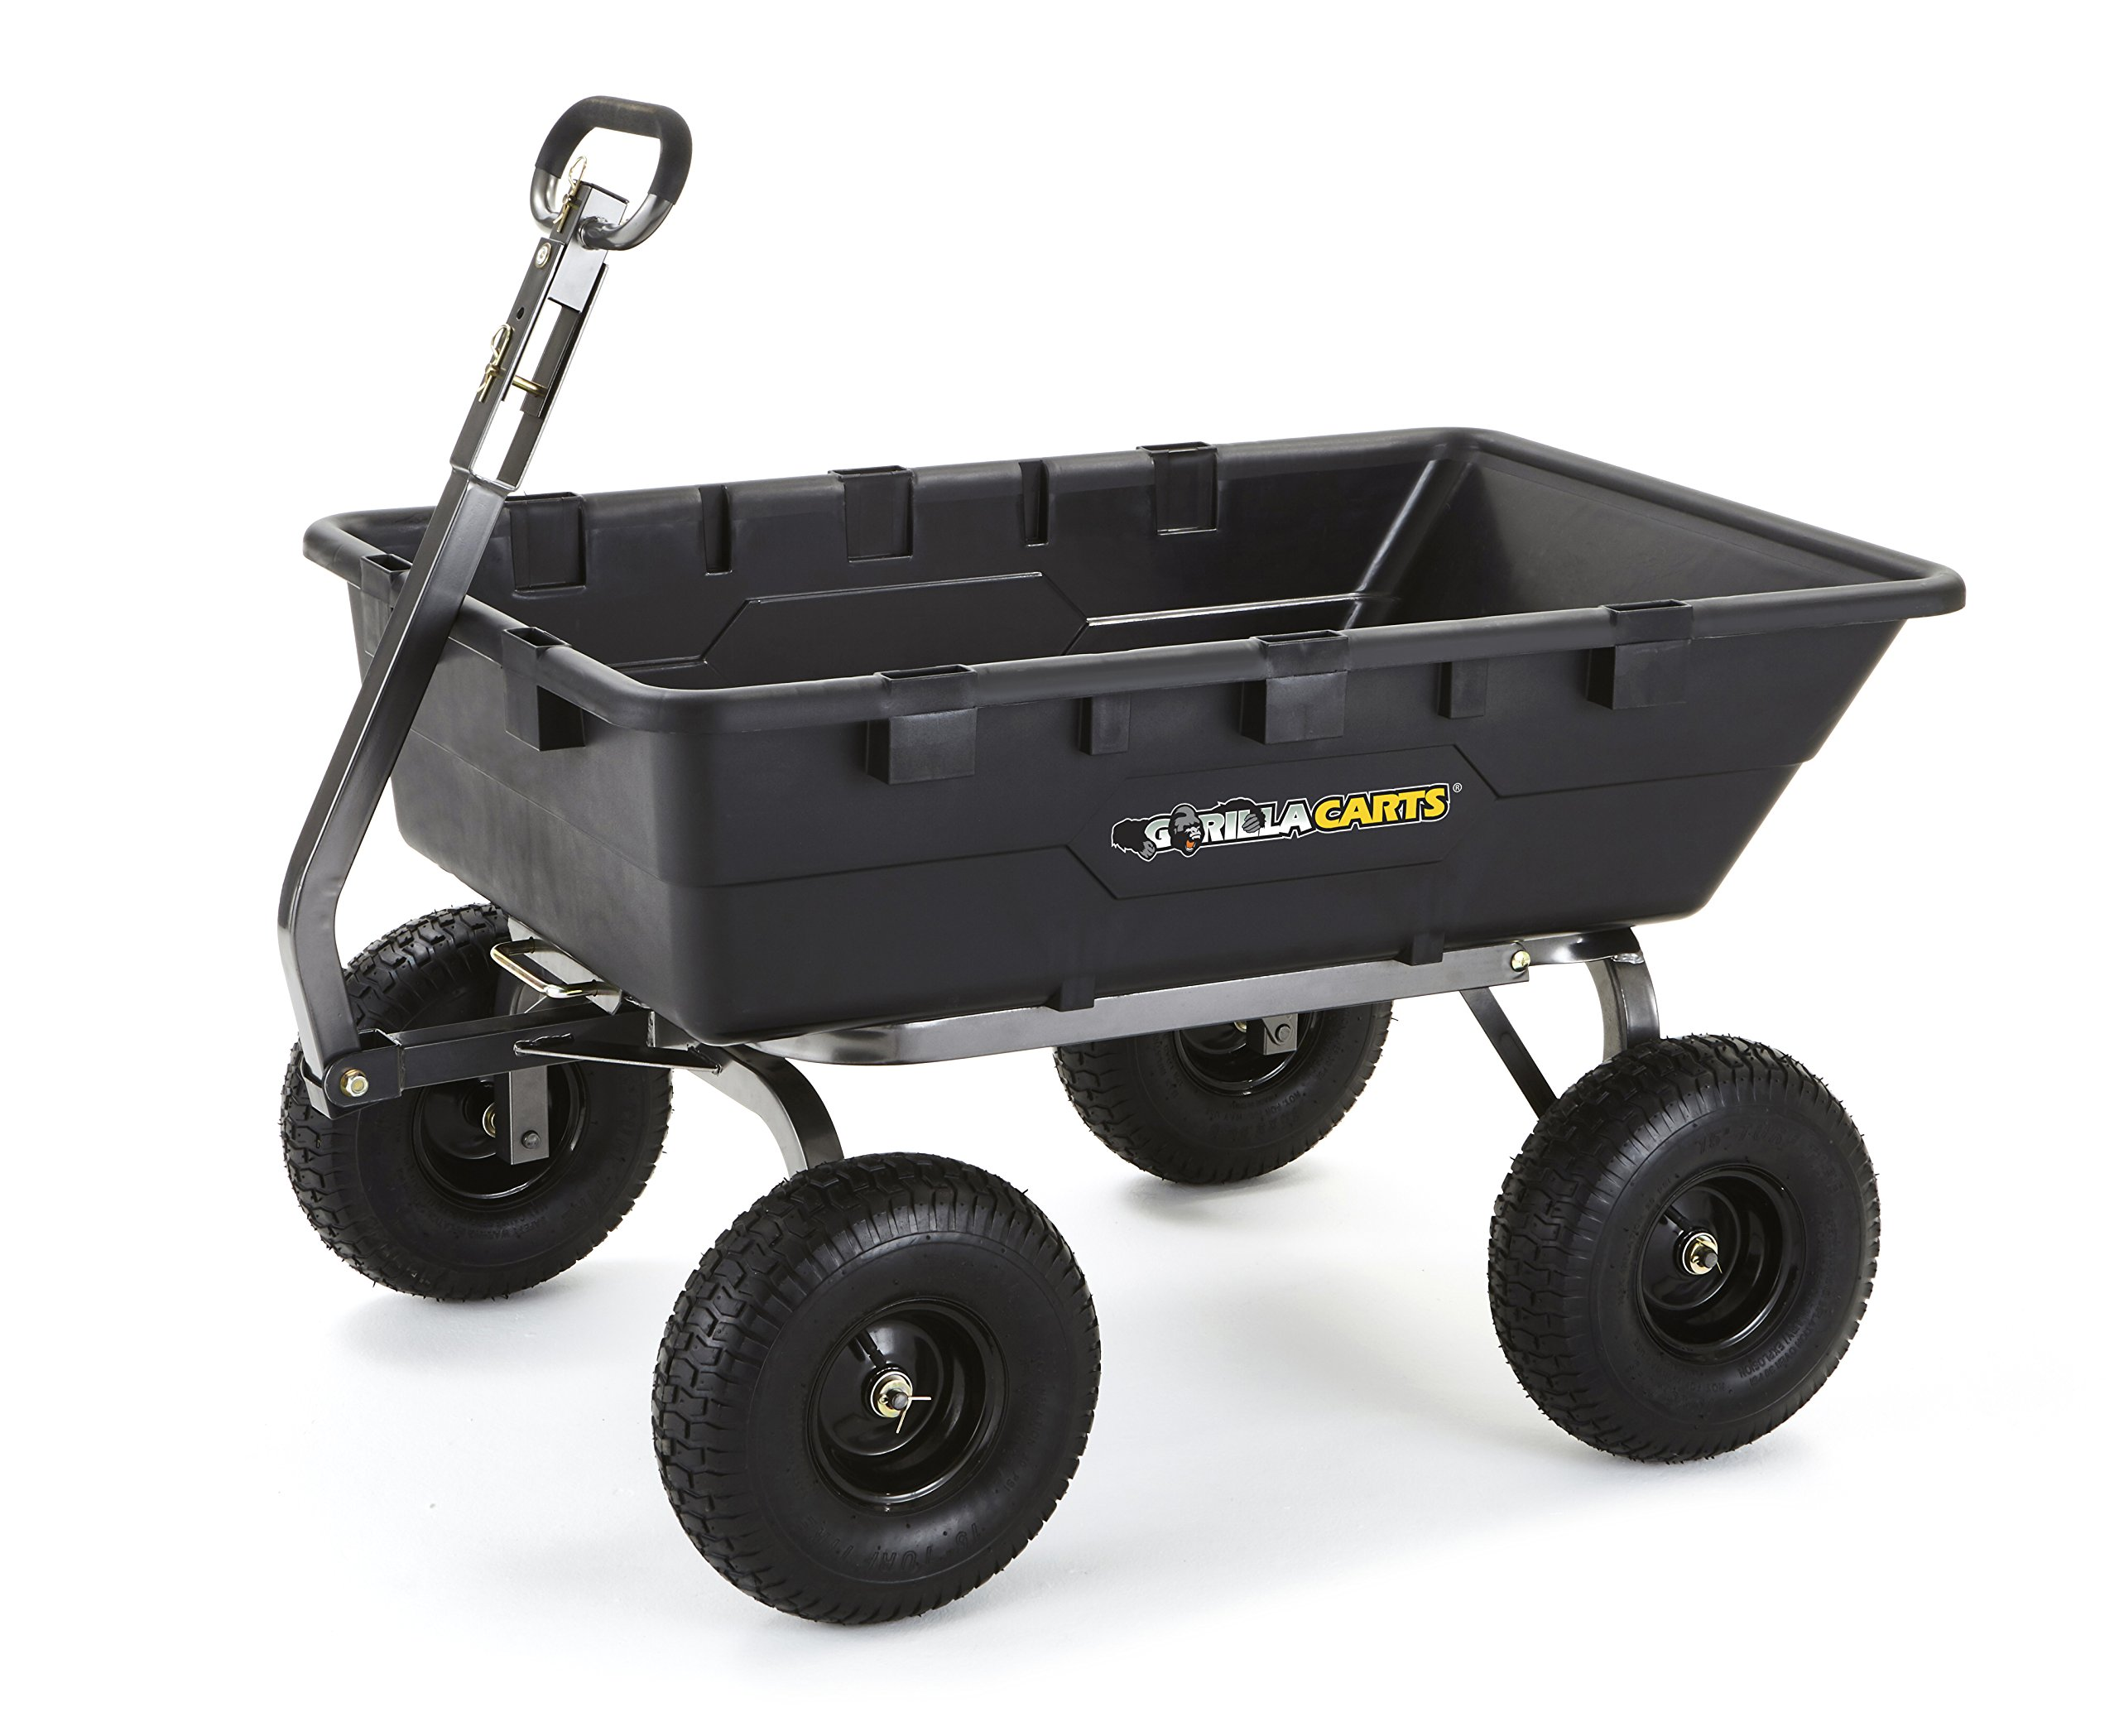 Gorilla Carts Extra Heavy-Duty Poly Dump Cart with 2-in-1 Convertible Handle with a Capacity of 1500 lb, Black by Gorilla Carts